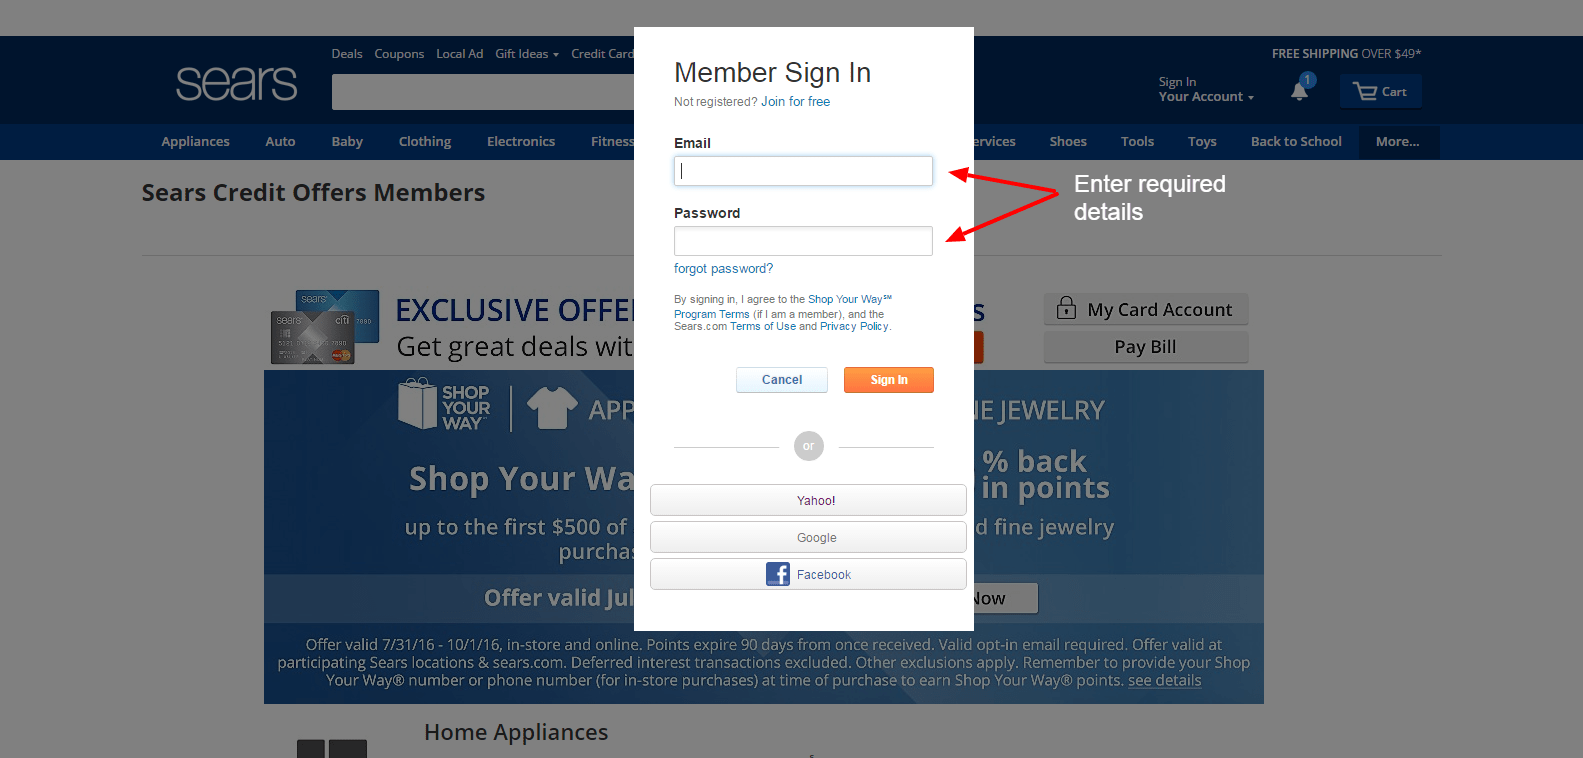 sears-sign-in-2